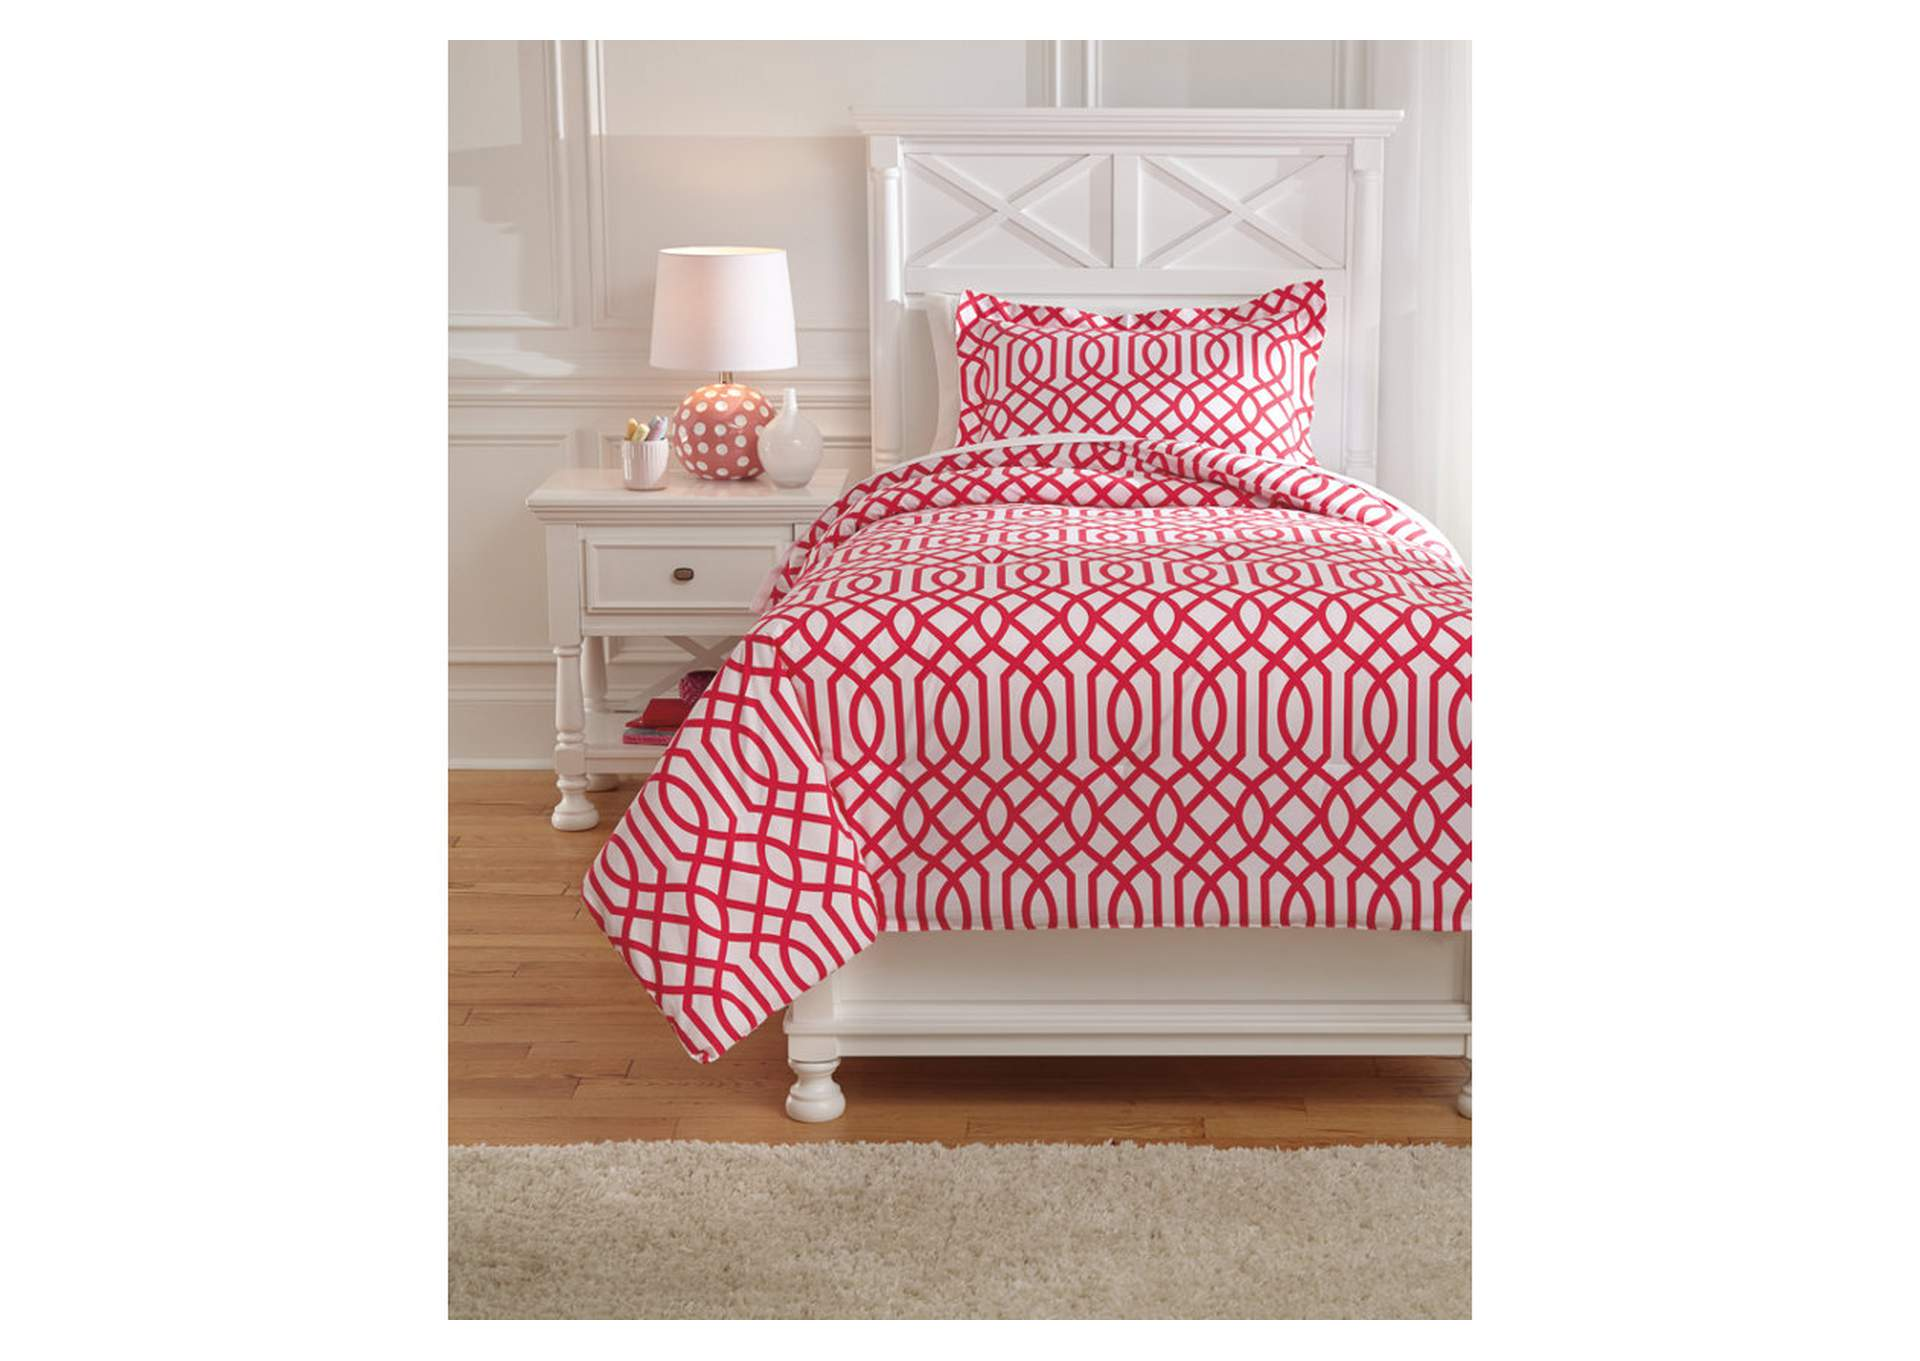 Loomis Fuchsia Twin Comforter Set,Direct To Consumer Express